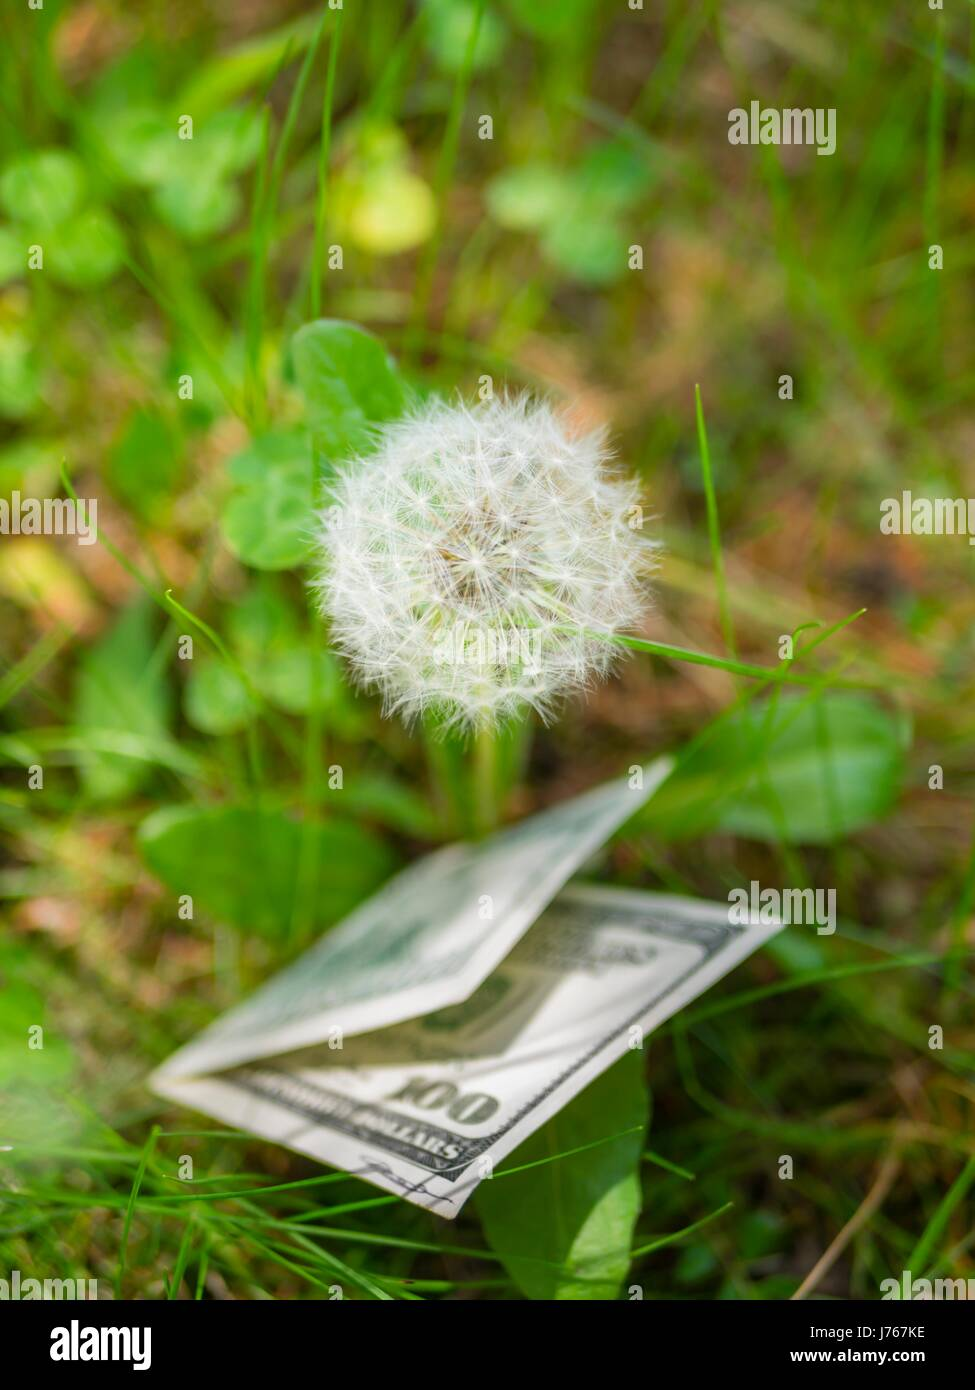 Dandelion and money dollars lying underneath outdoors outdoor - Stock Image